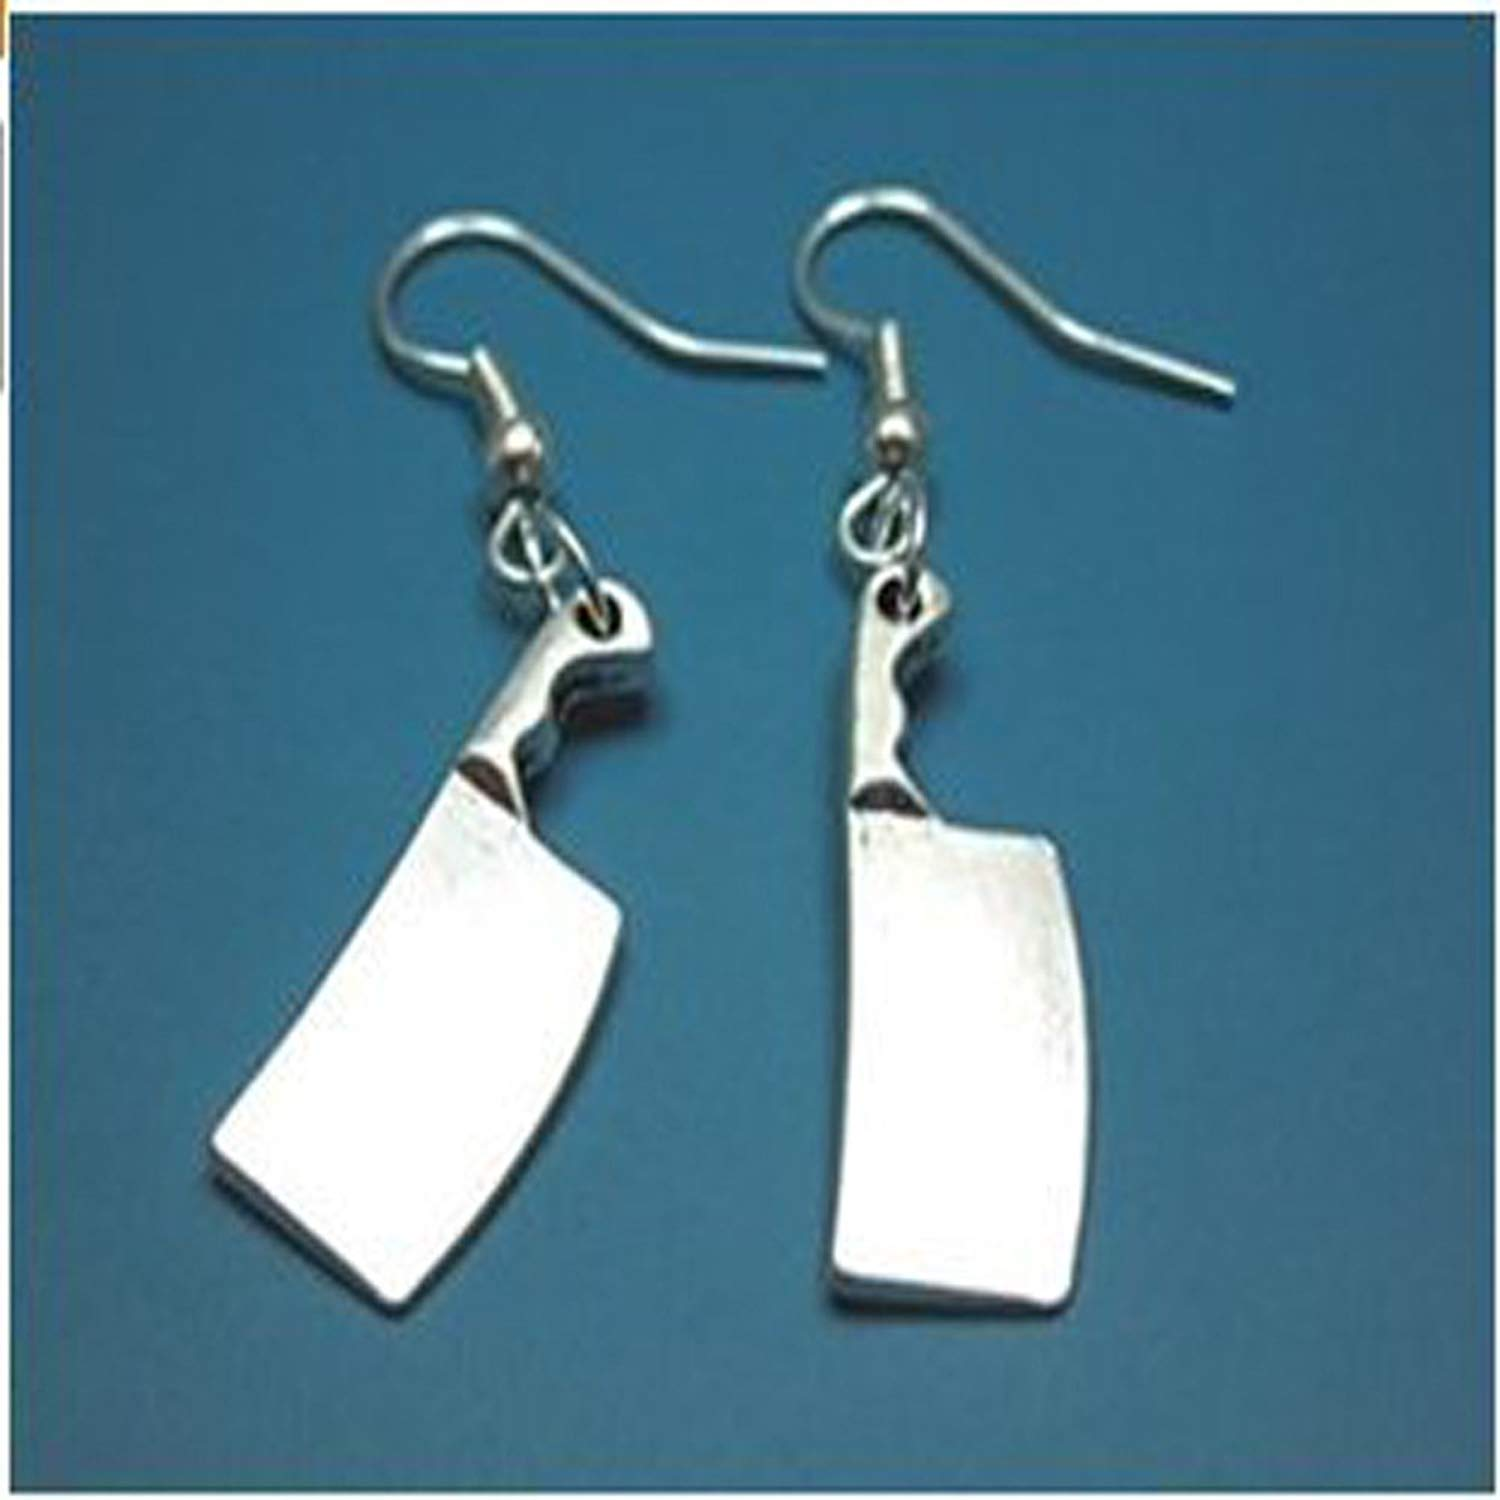 bafc043fc Get Quotations · Butcher Knife Earrings - Zombie Weapon Creepy Cute  Earrings Scary Horror Jewelry Quirky Funky Earrings Geek